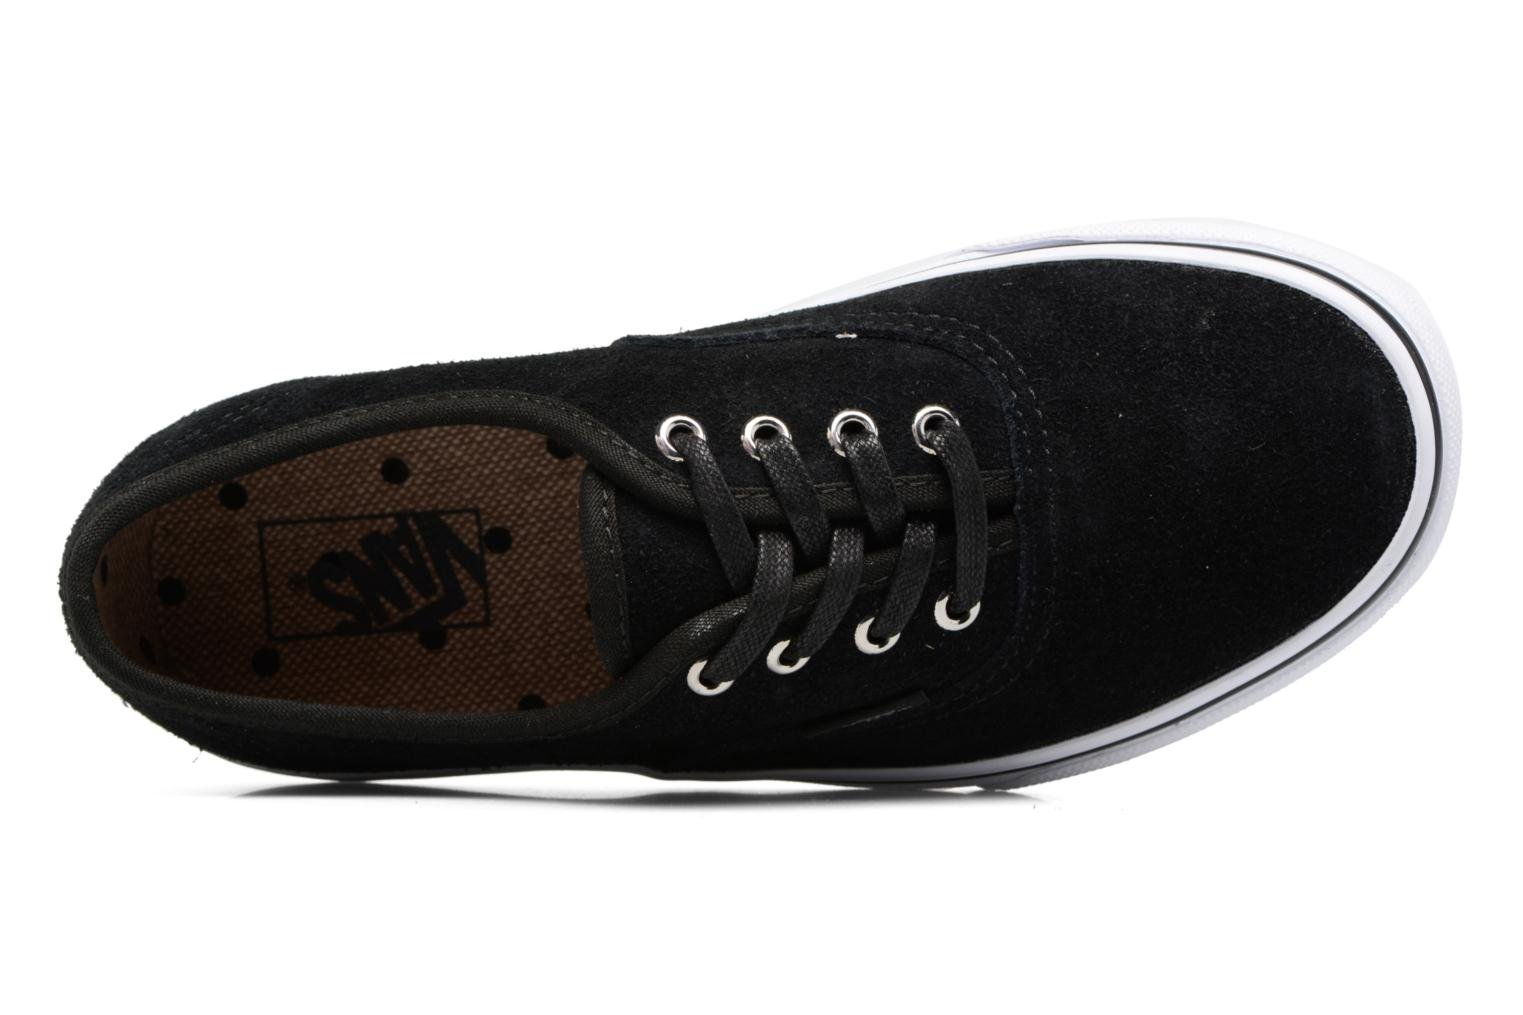 Authentic E (Suede) Black/Tweed Dots